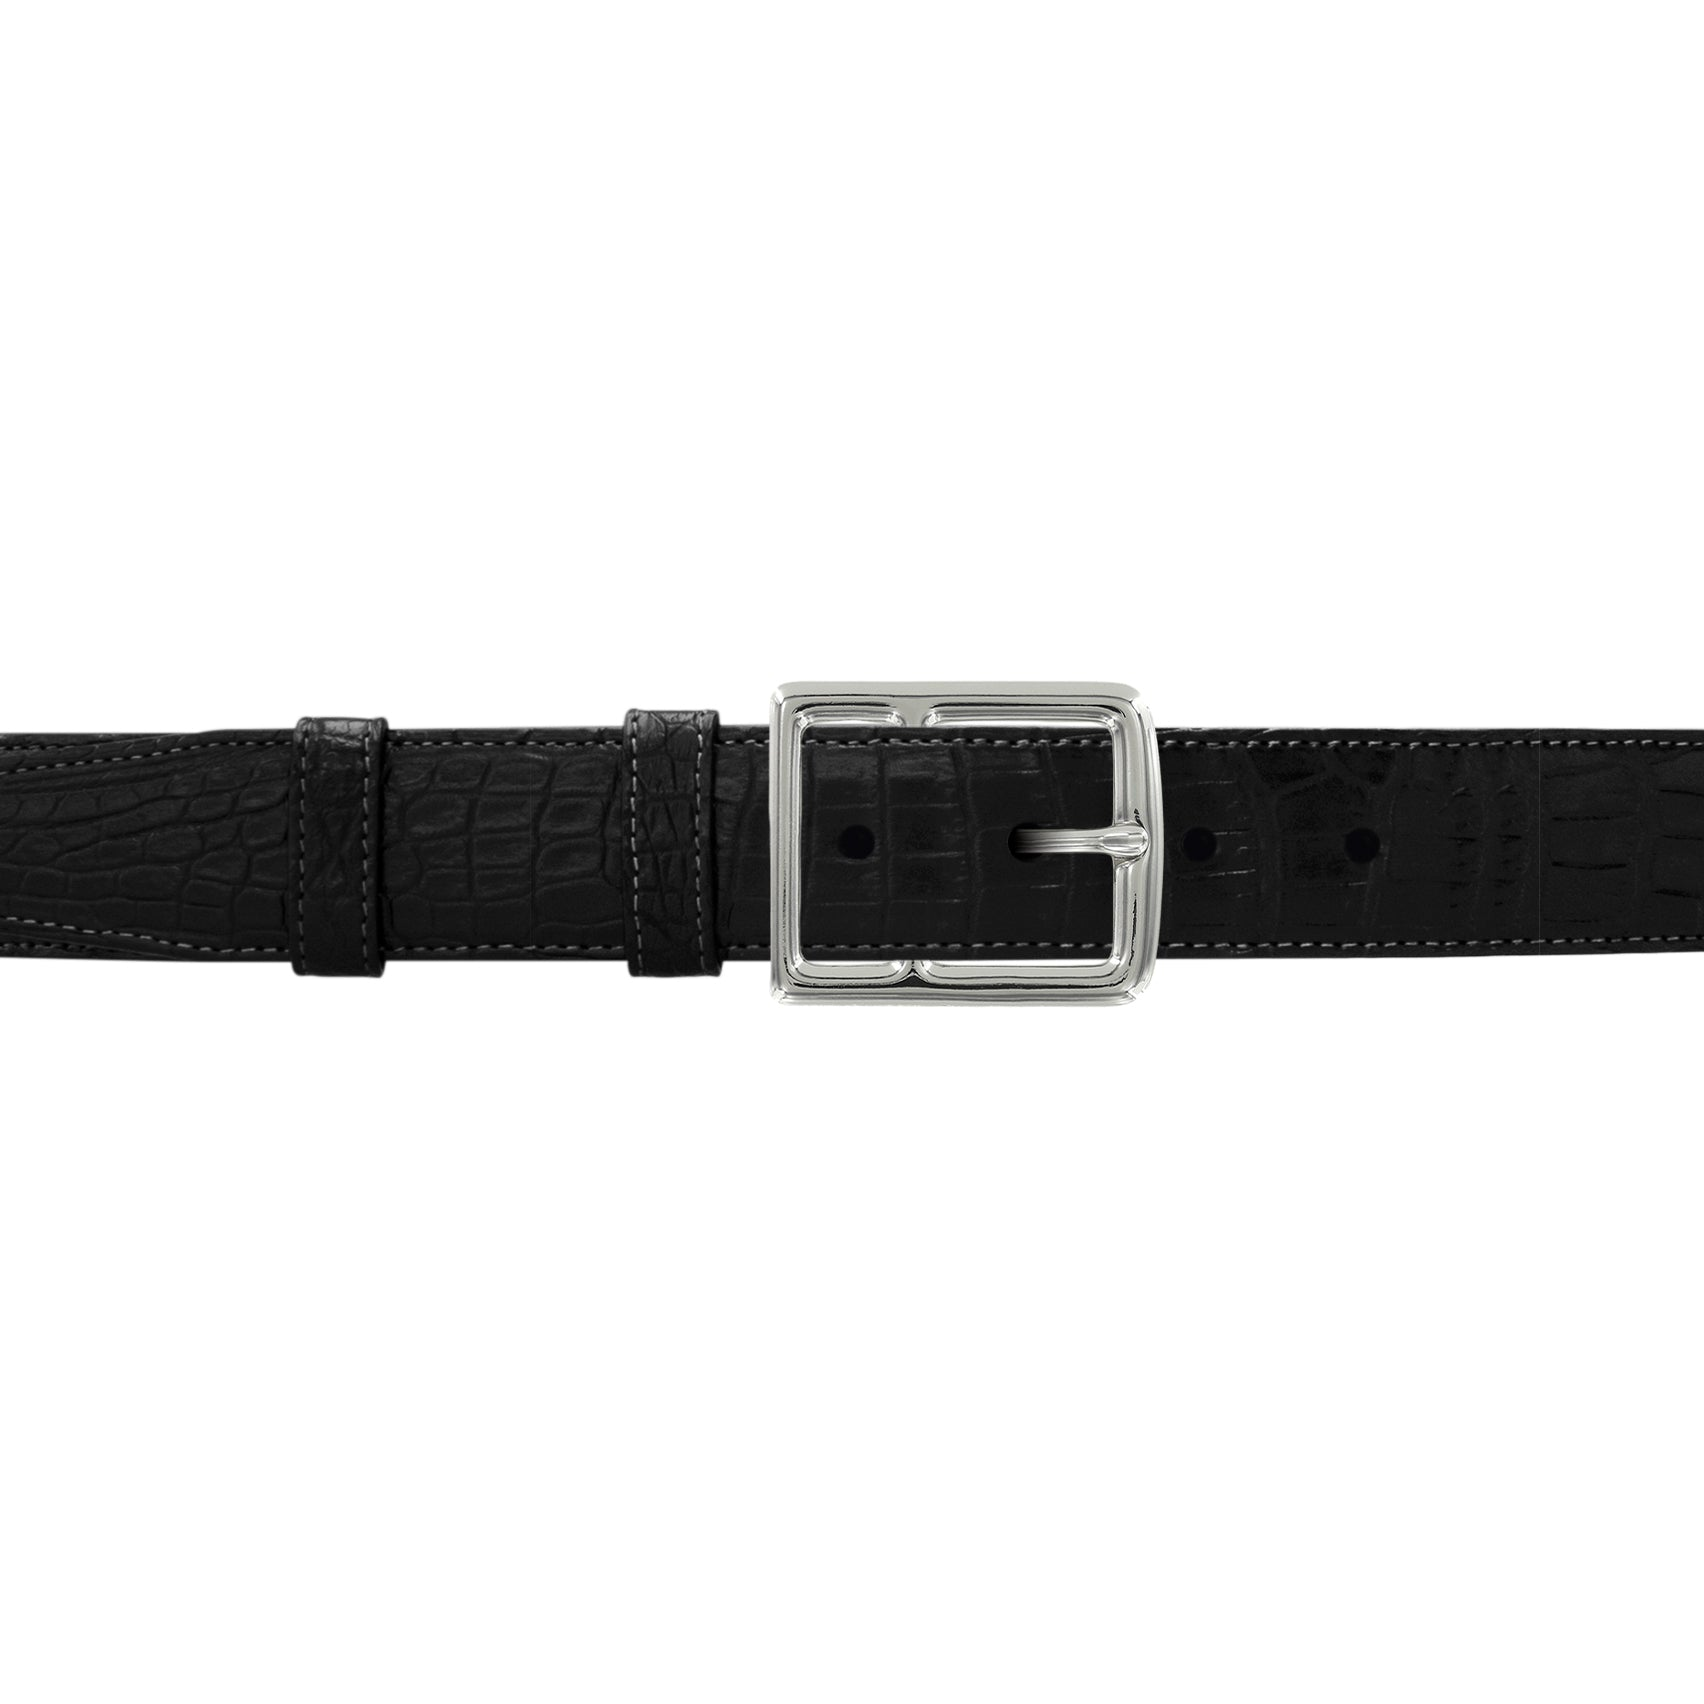 "1 1/4"" Raven Classic Belt with Crawford Casual Buckle in Polished Nickel"